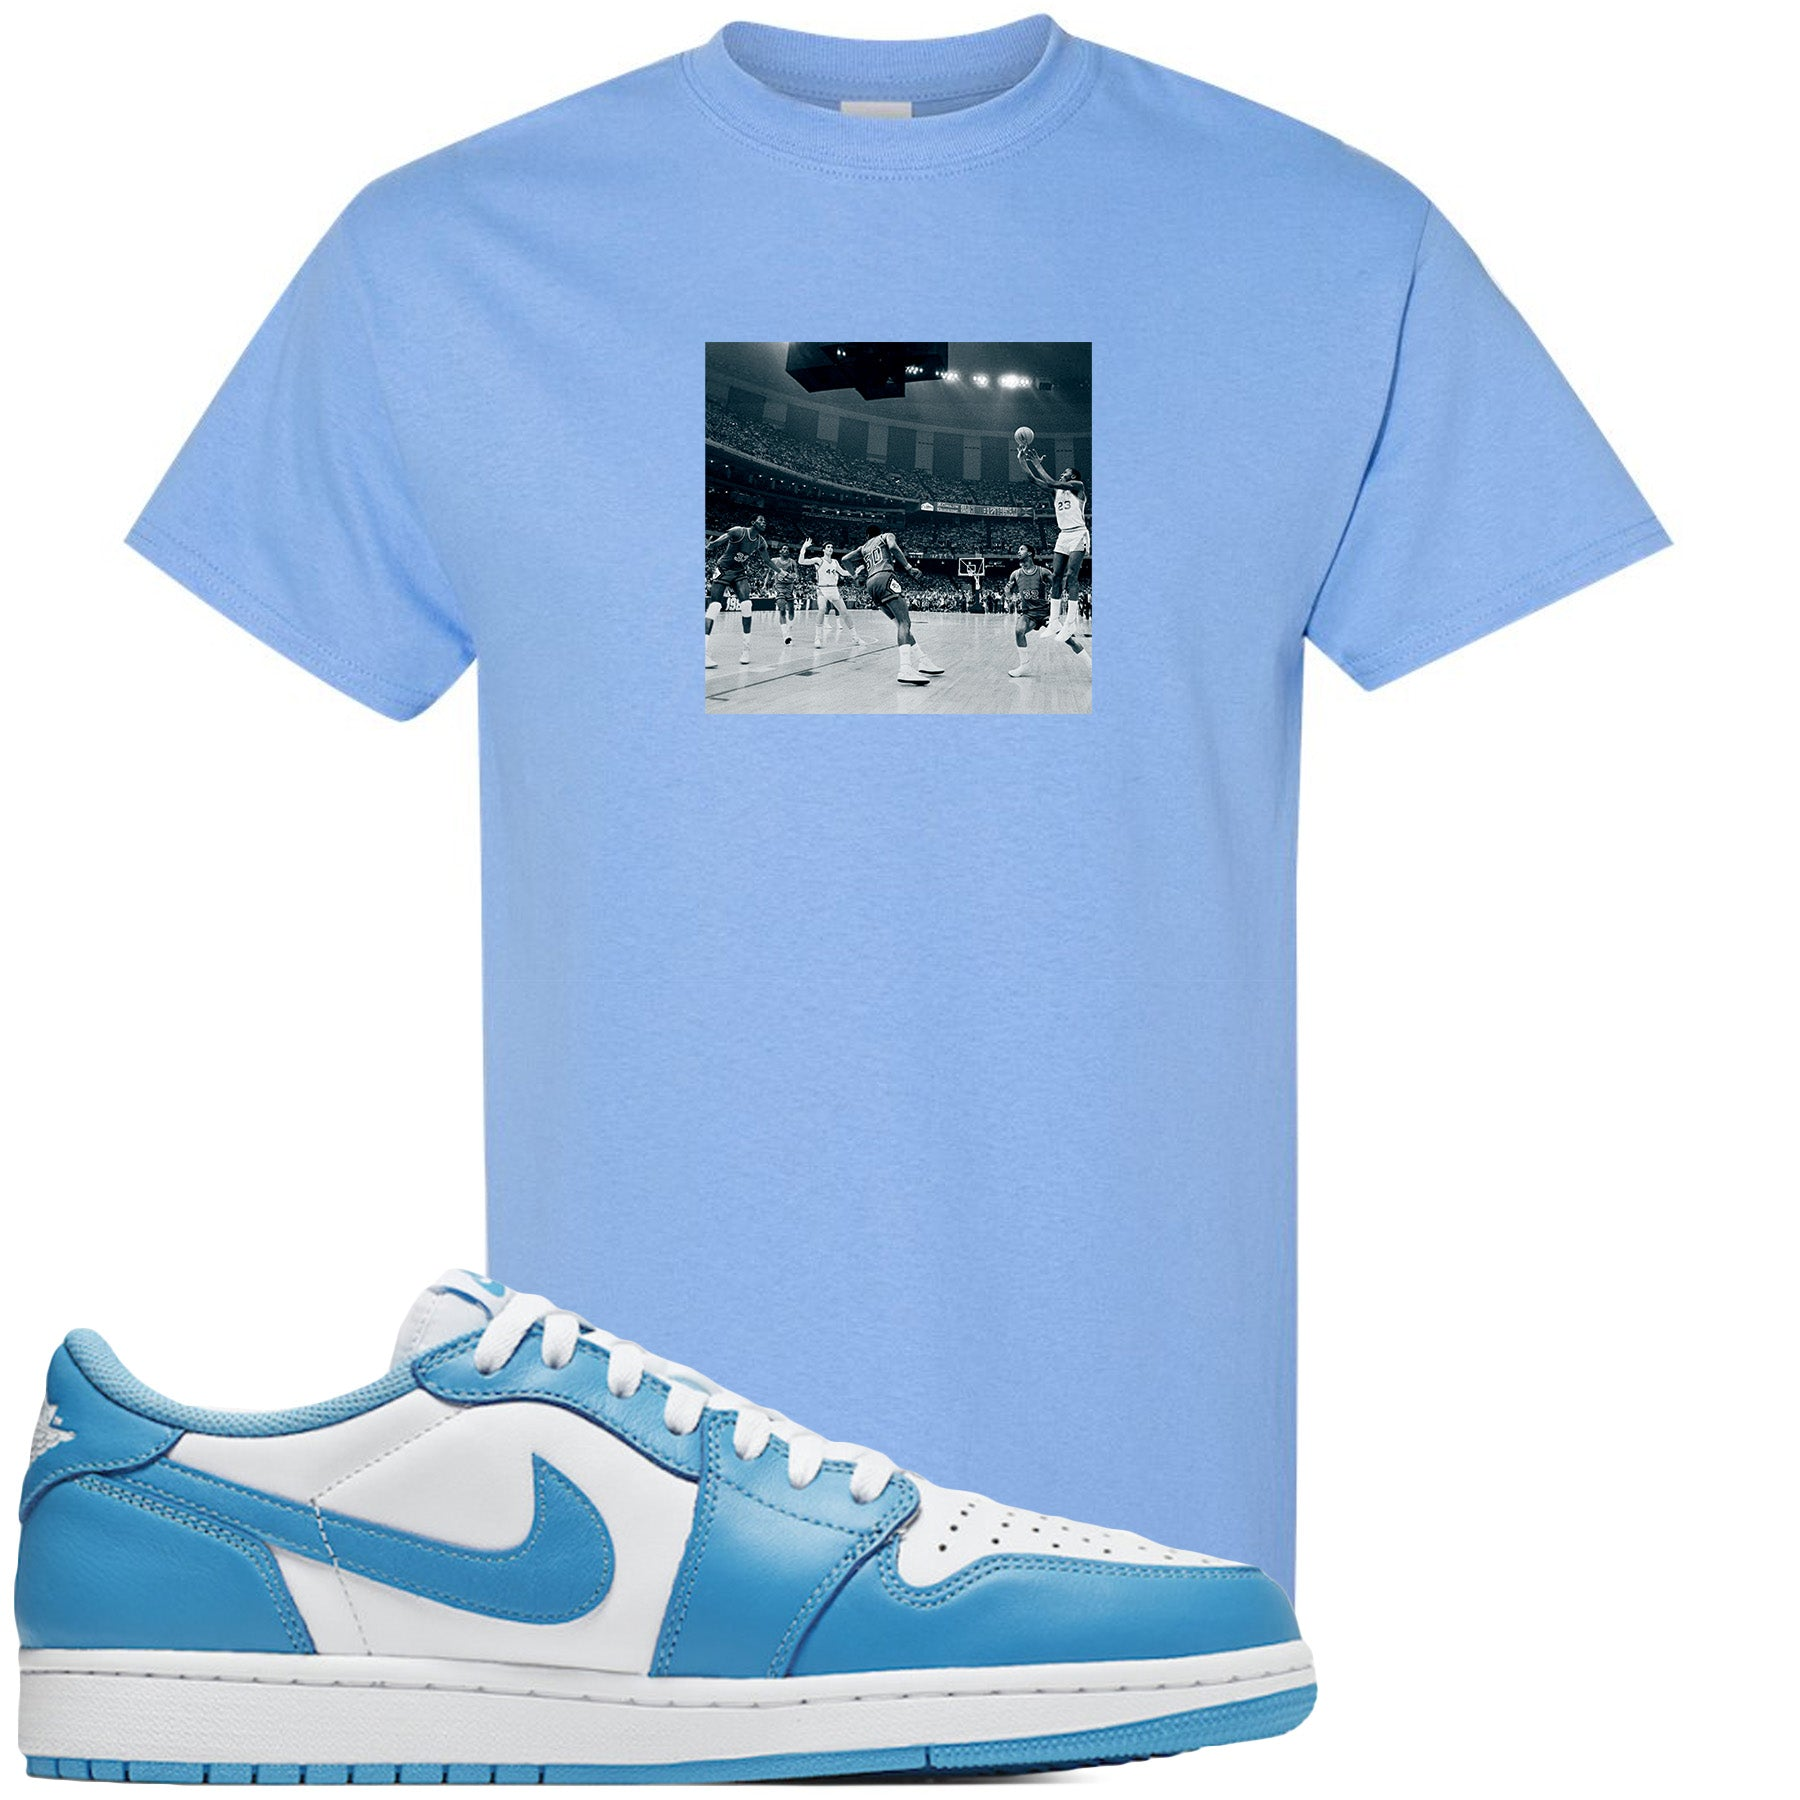 Nike Sb X Air Jordan 1 Low Unc Sneaker Hook Up Game Winner Light